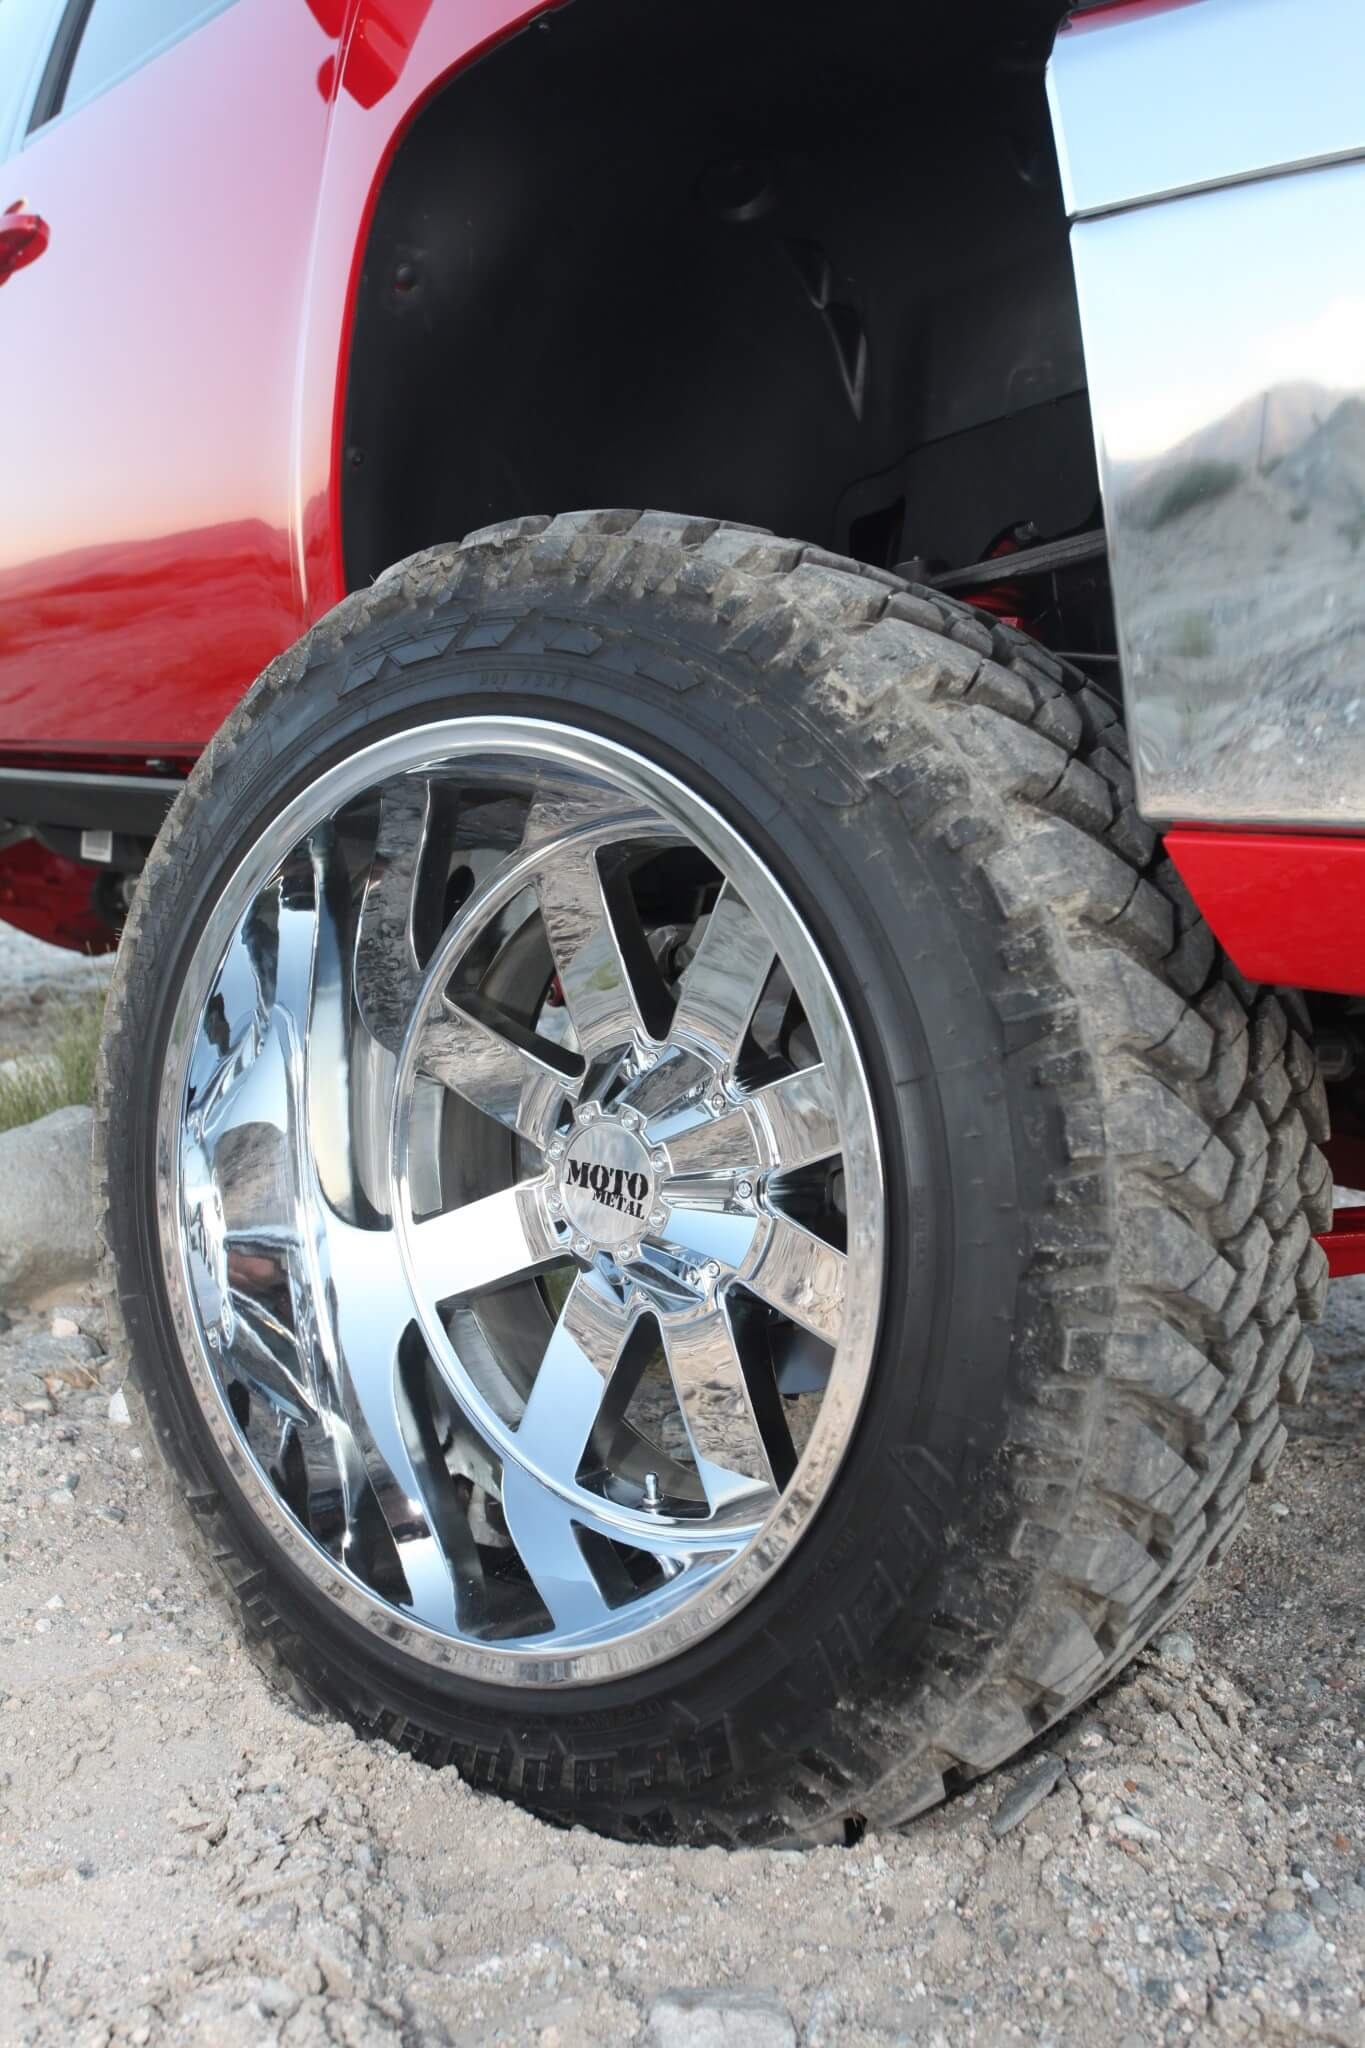 Giving the truck great off-road capabilities are the Nitto Trail Grappler tires have been mounted on eight-spoke Moto Metal 962 wheels.